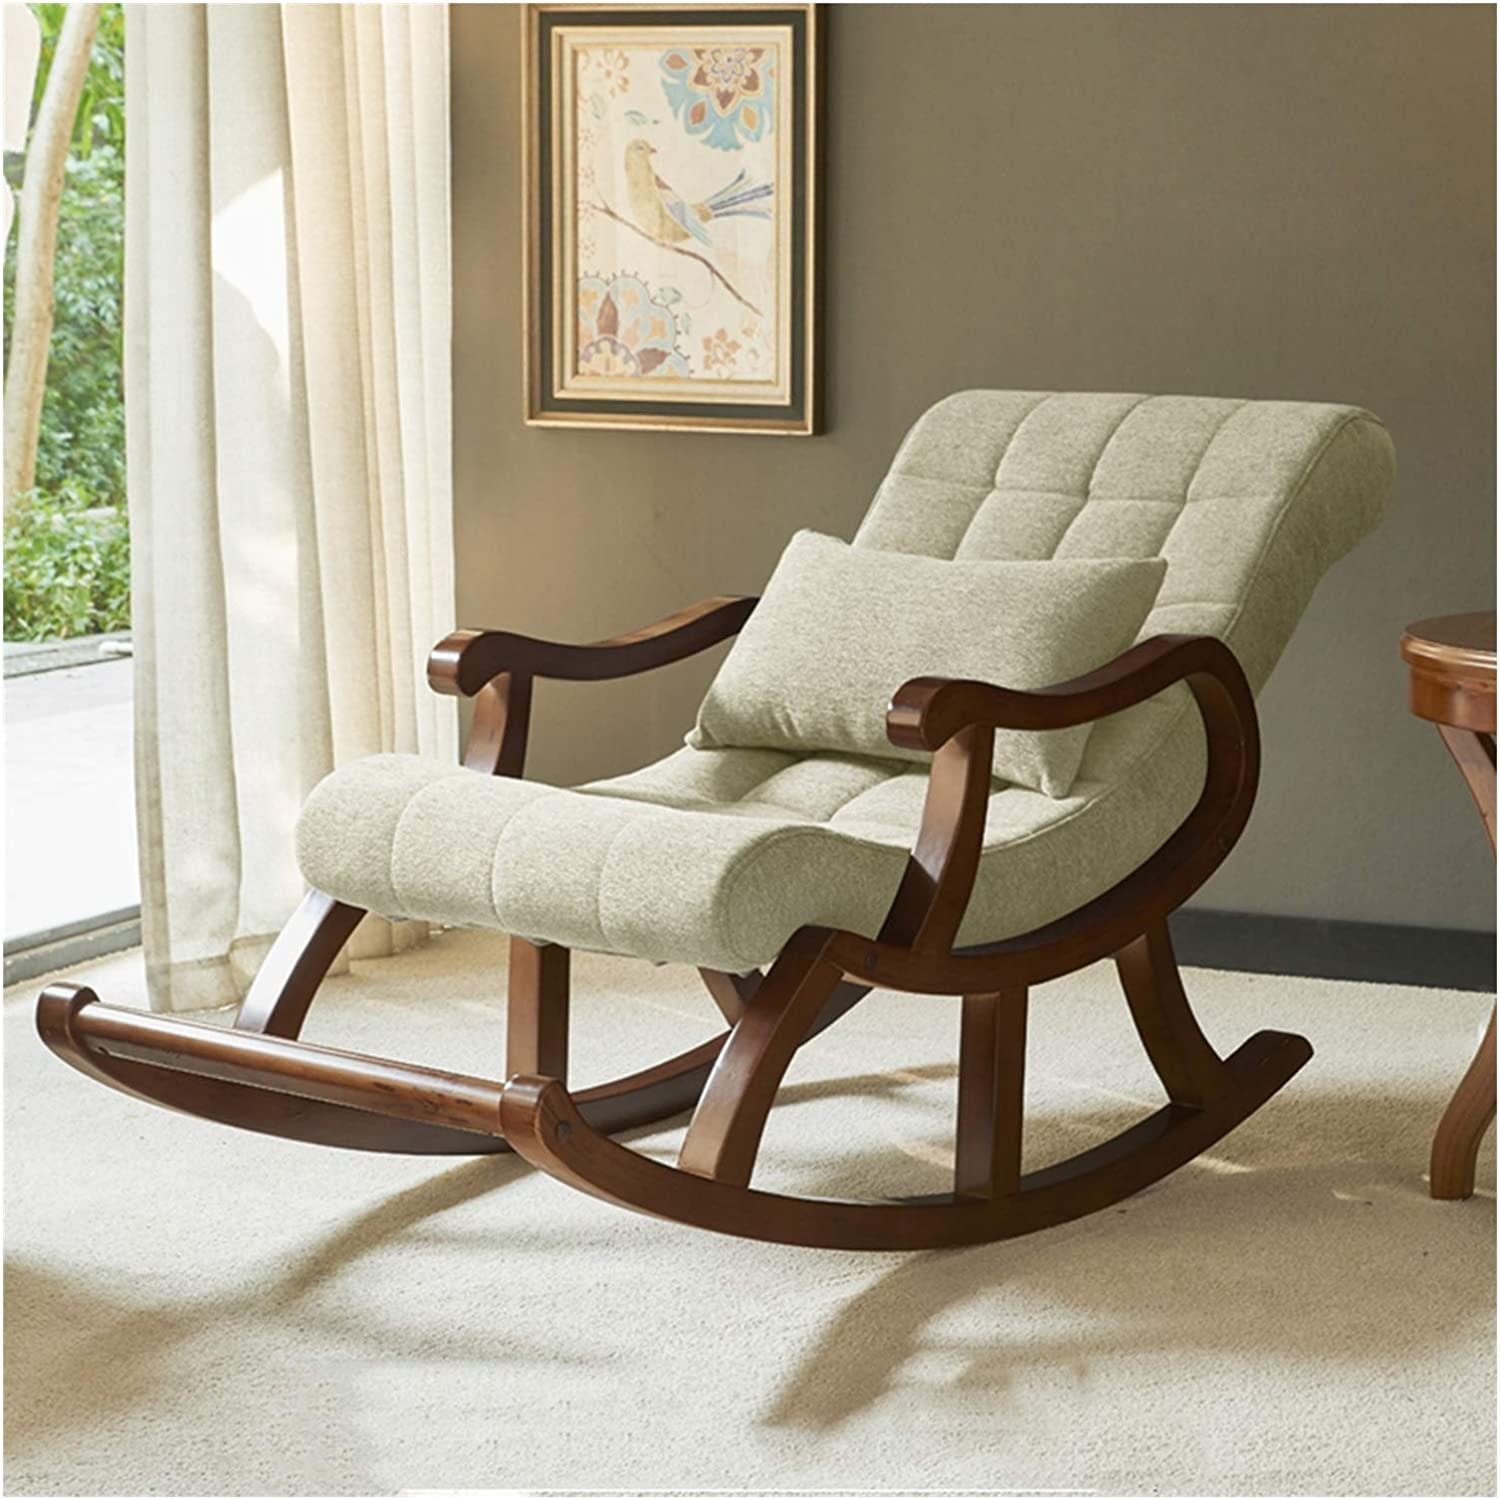 SFGH Solid Wood Rocking Chair Pedal Lazy High quality Recl Integrated Leisure Sacramento Mall